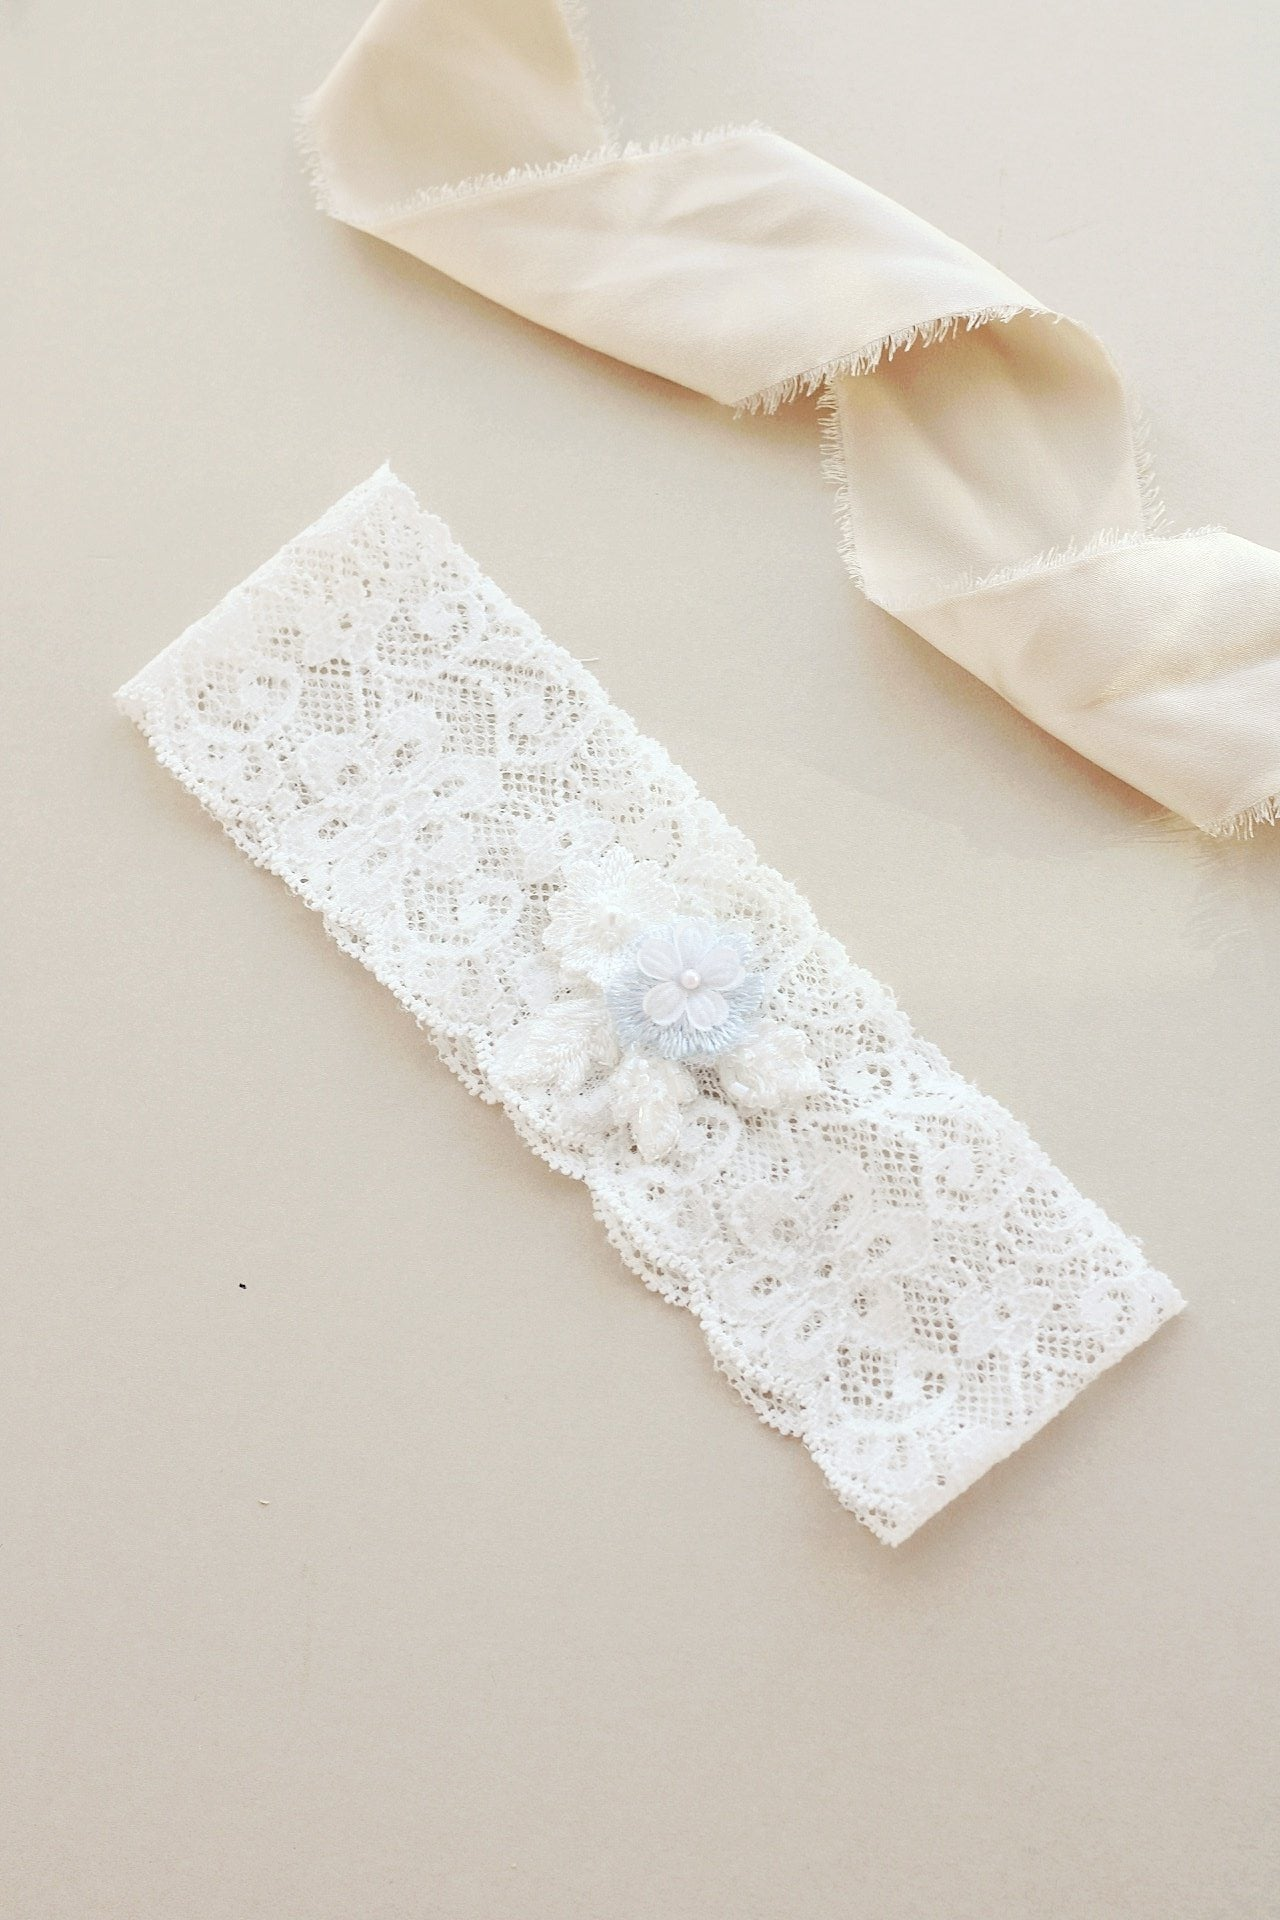 Soft lace wedding garter with something blue